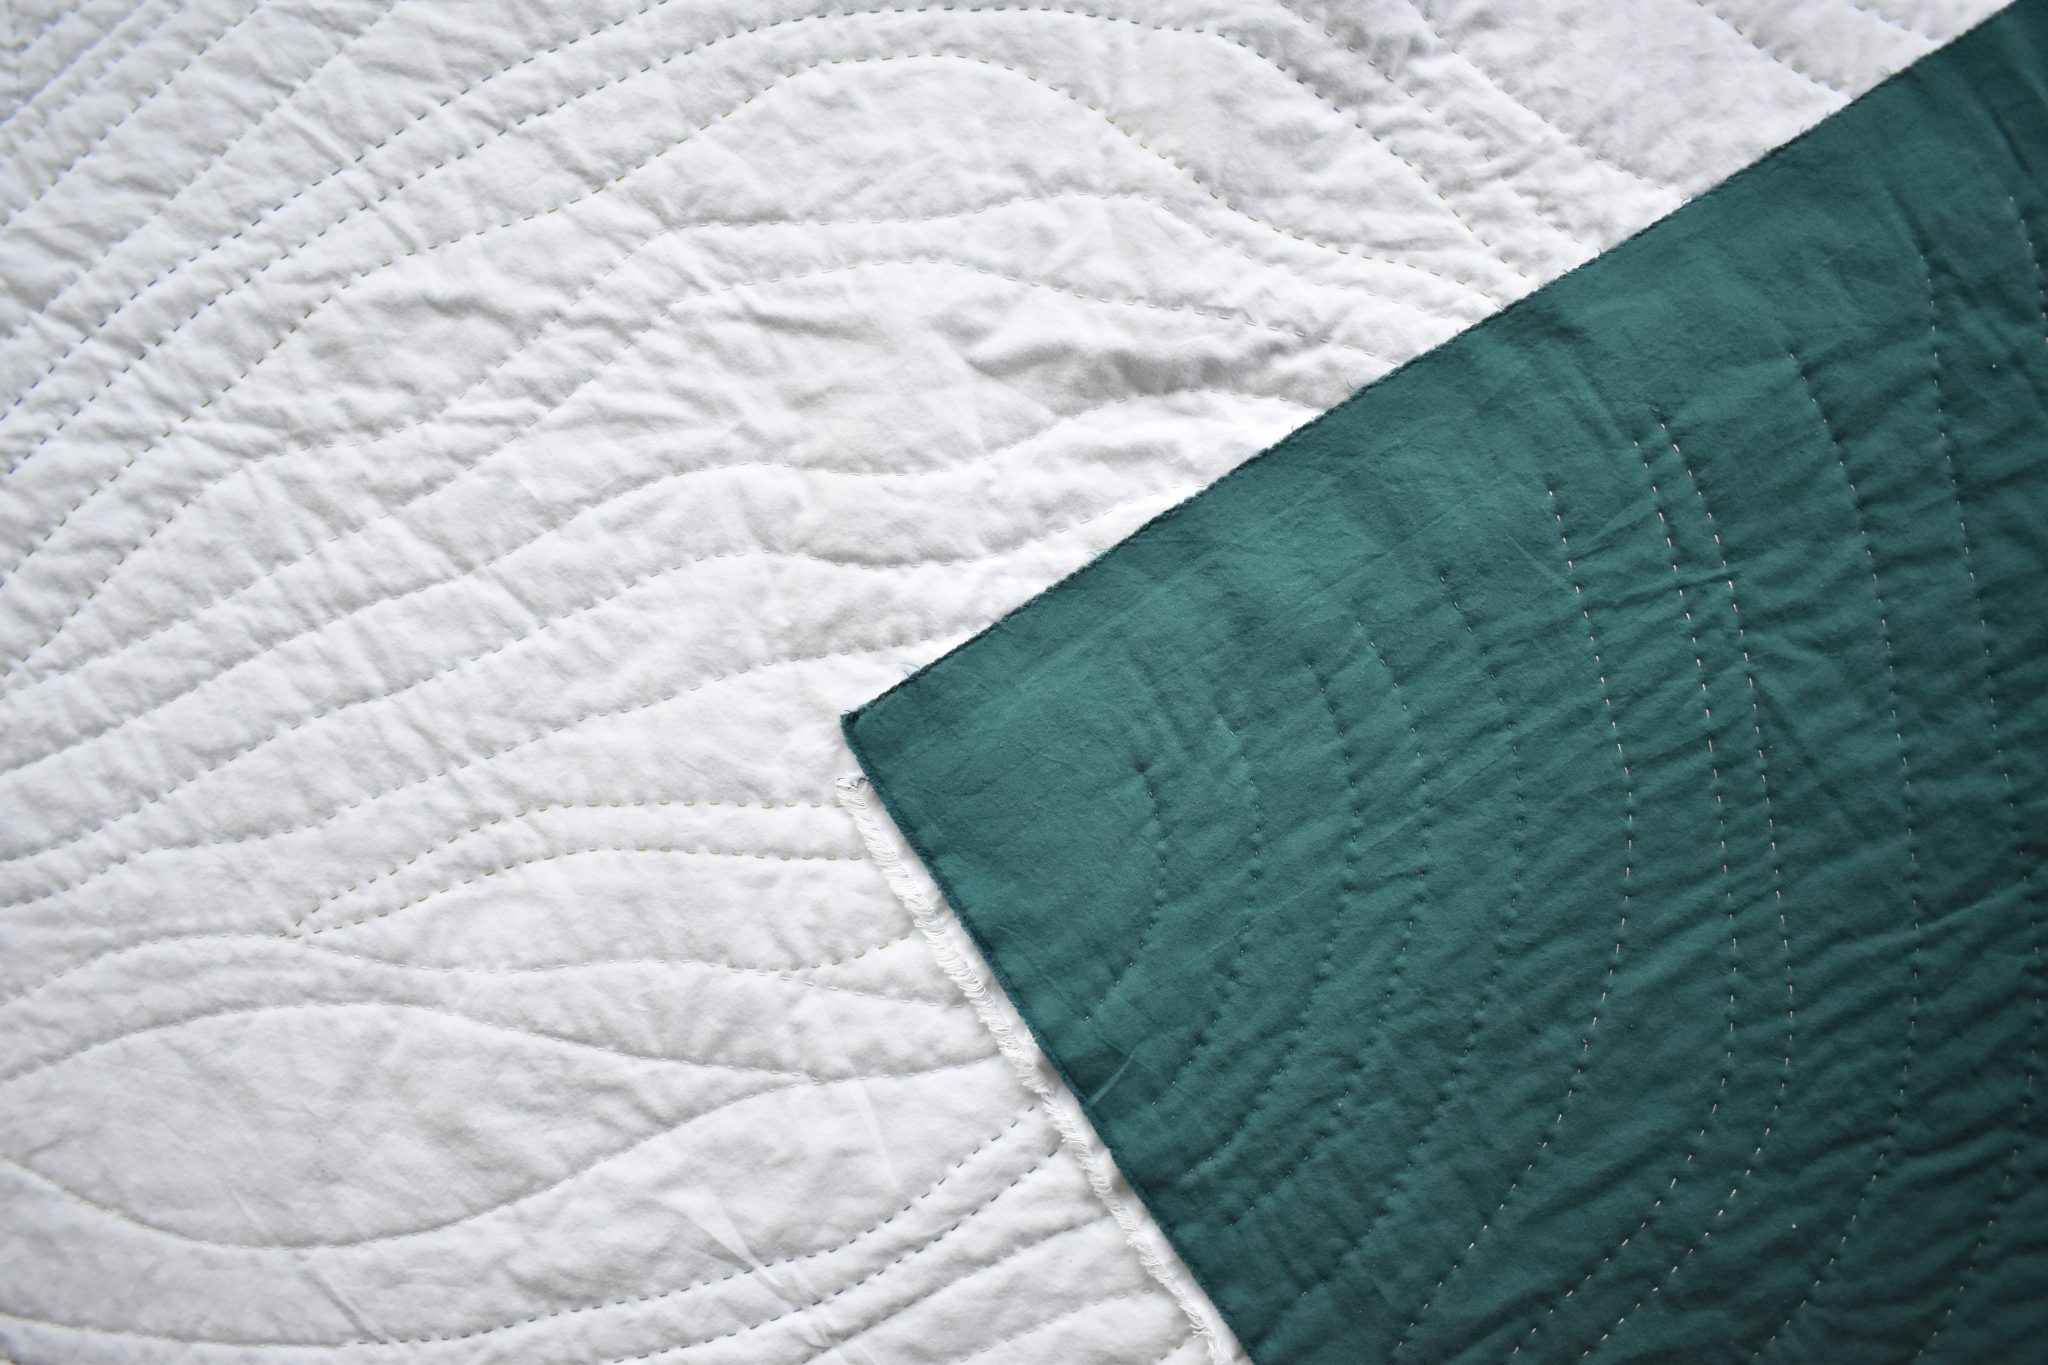 An organic hand-quilted wholecloth quilt